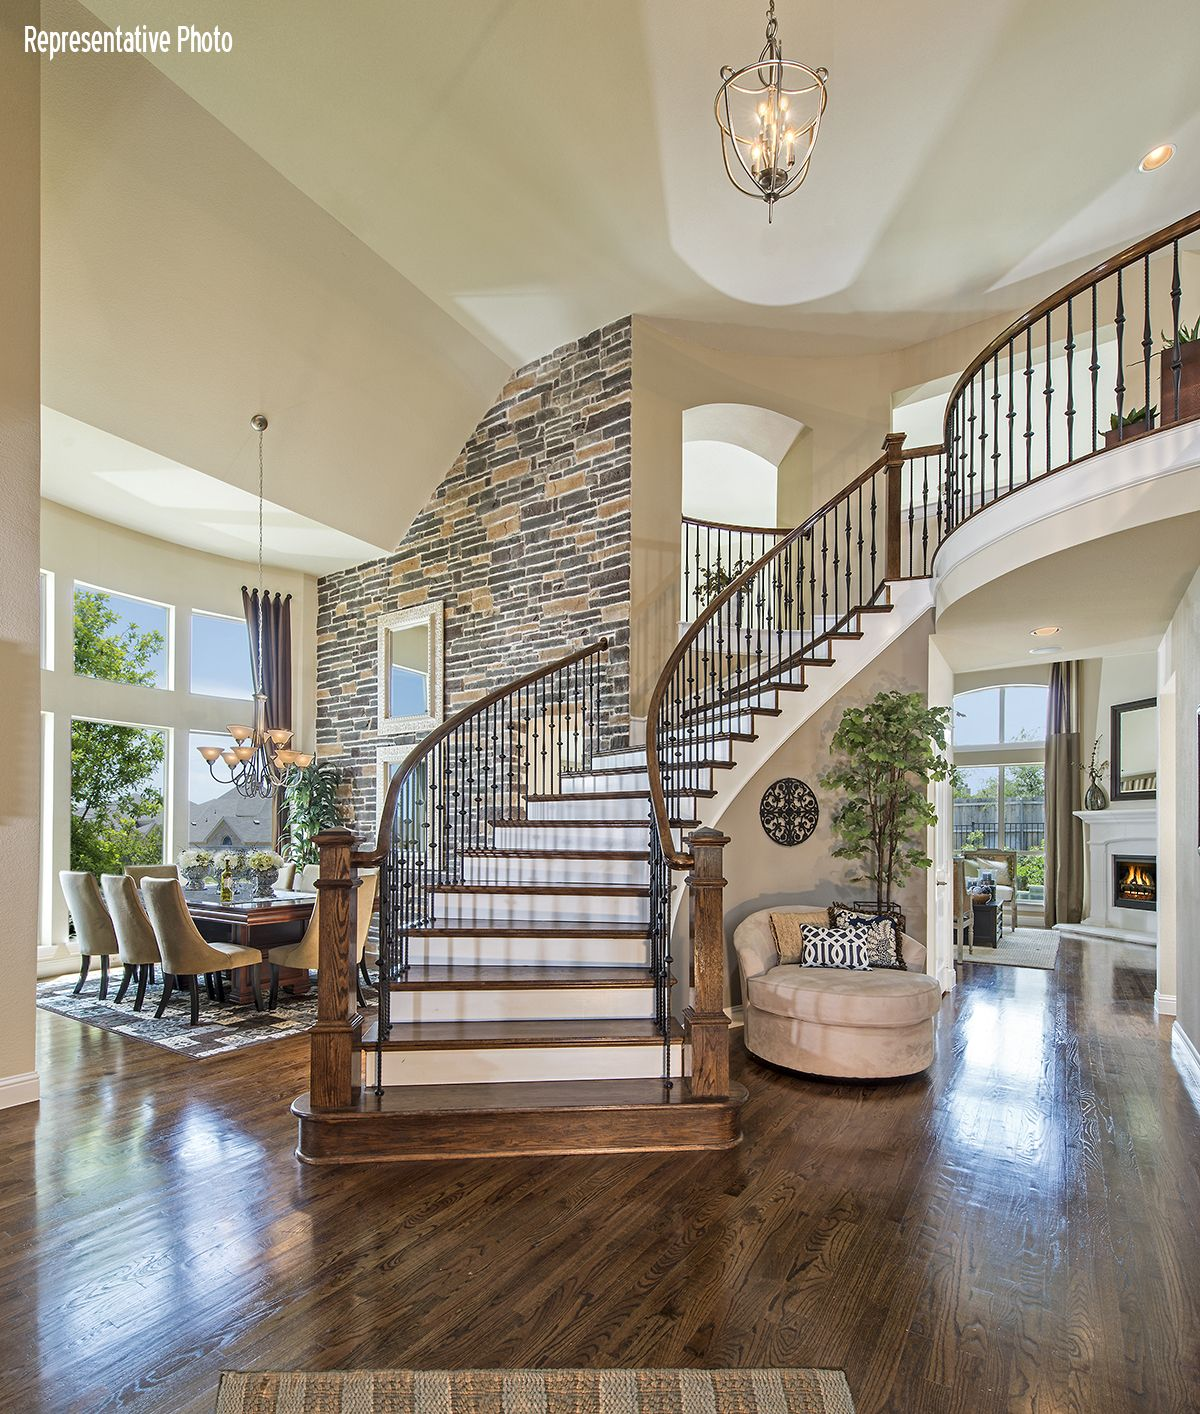 Second Home Decorating Ideas: Entry Way With Open Areas Alone The Top On The Second